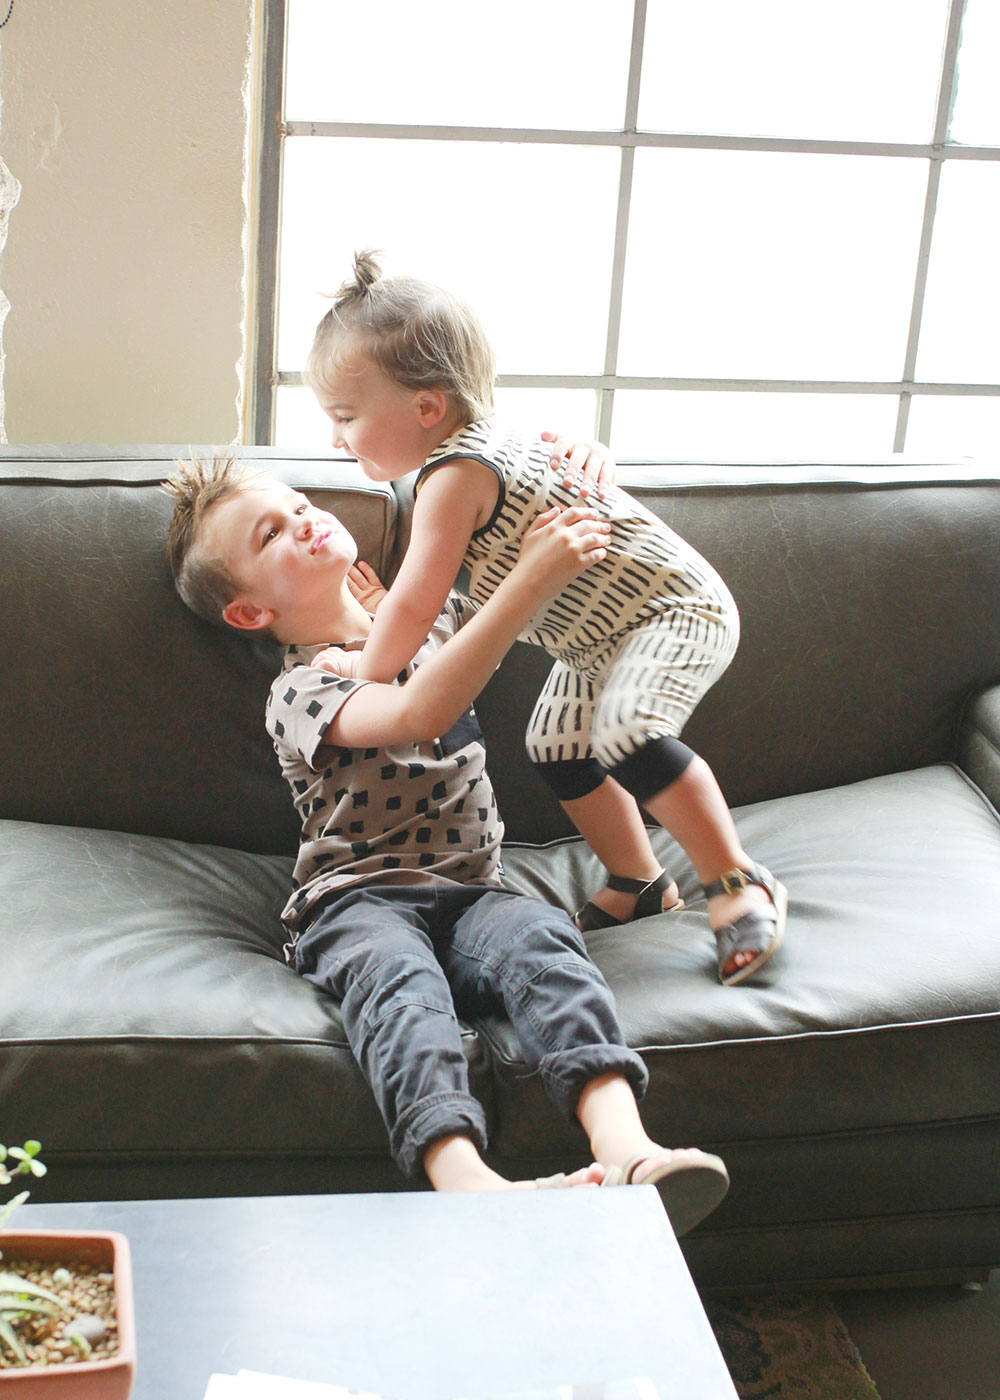 brotherly love and weekend mini style | thelovedesignedlife.com